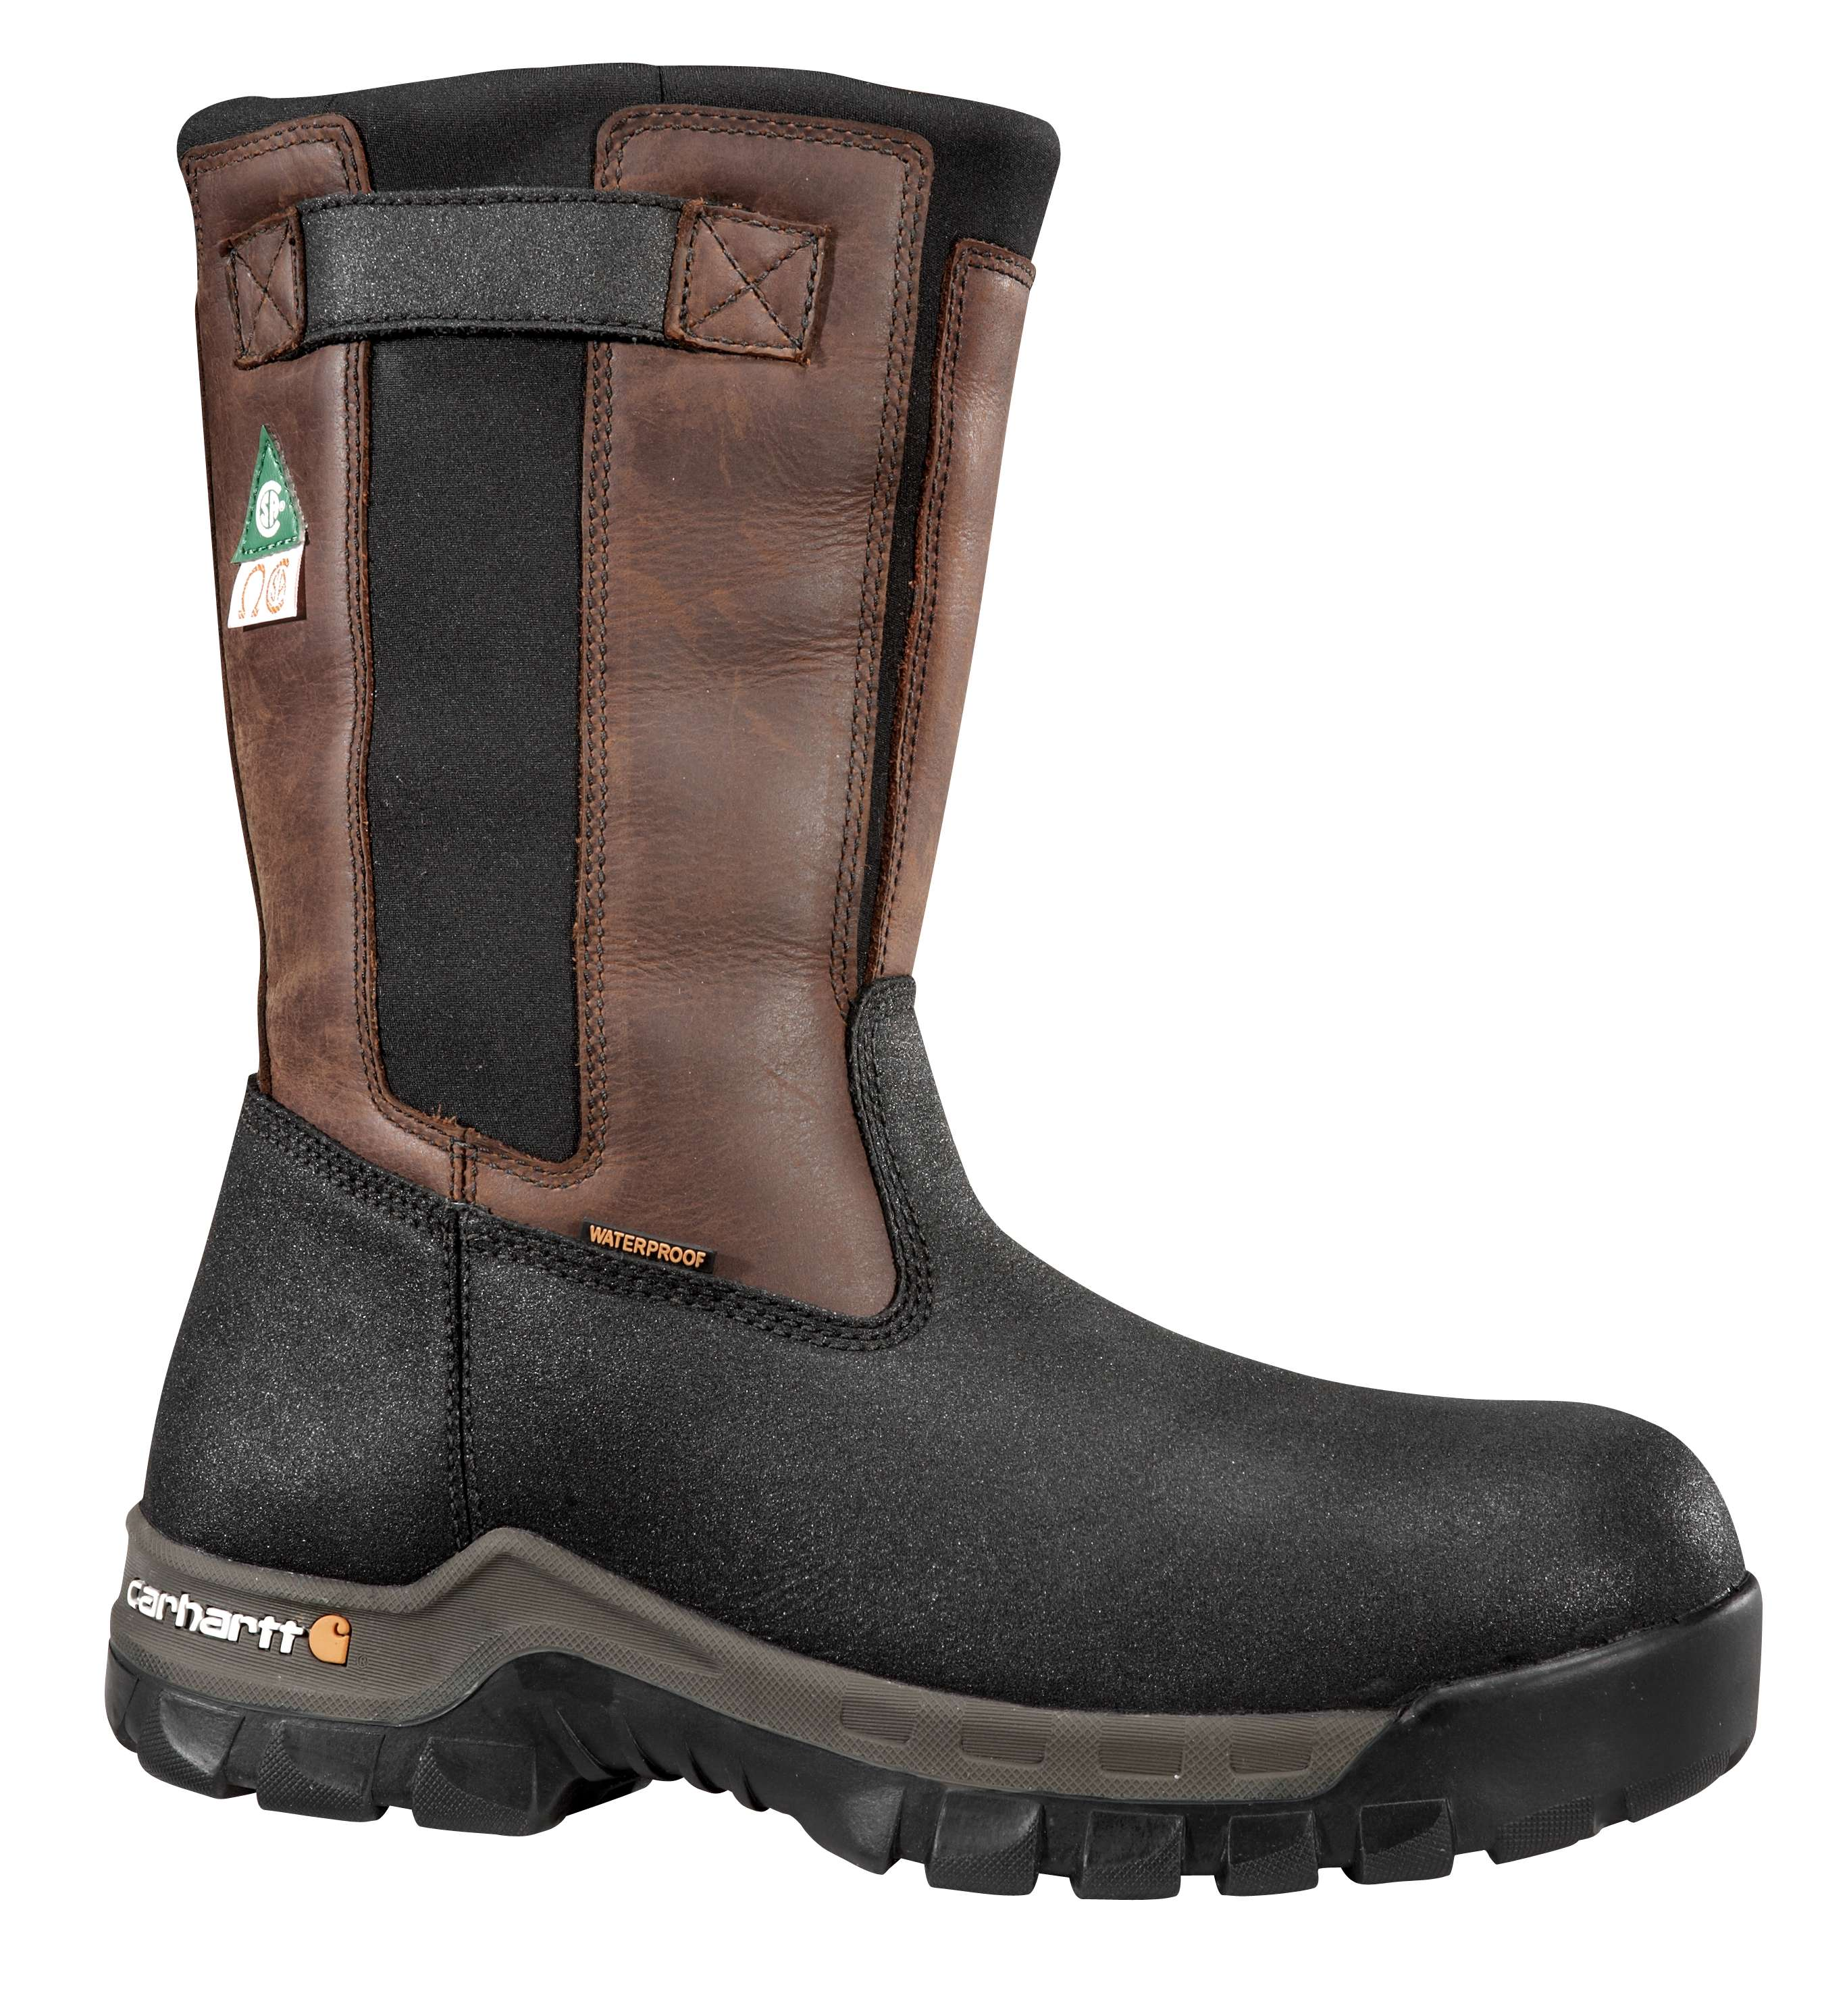 Carhartt Rugged Flex 10-inch Insulated Composite Toe Csa Wellington Boot